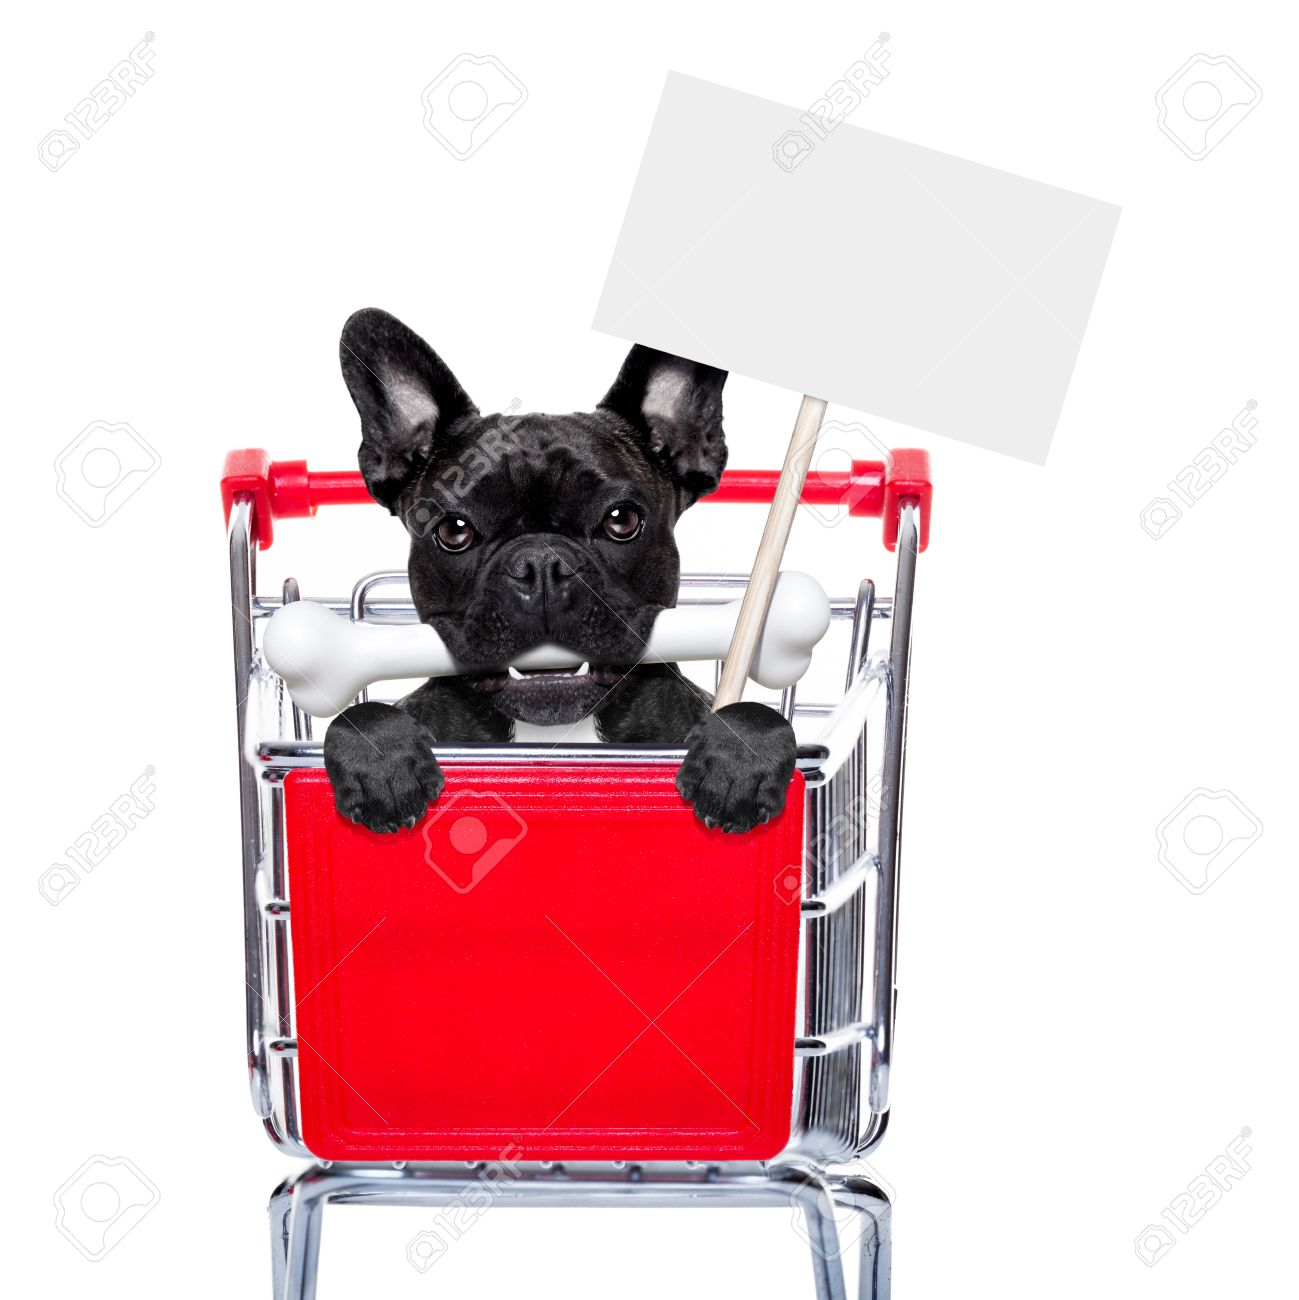 french bulldog dog inside a shopping cart trolley , behind  a blank  empty banner holding a placard, with a bone in mouth , isolated on white background Stock Photo - 44964440